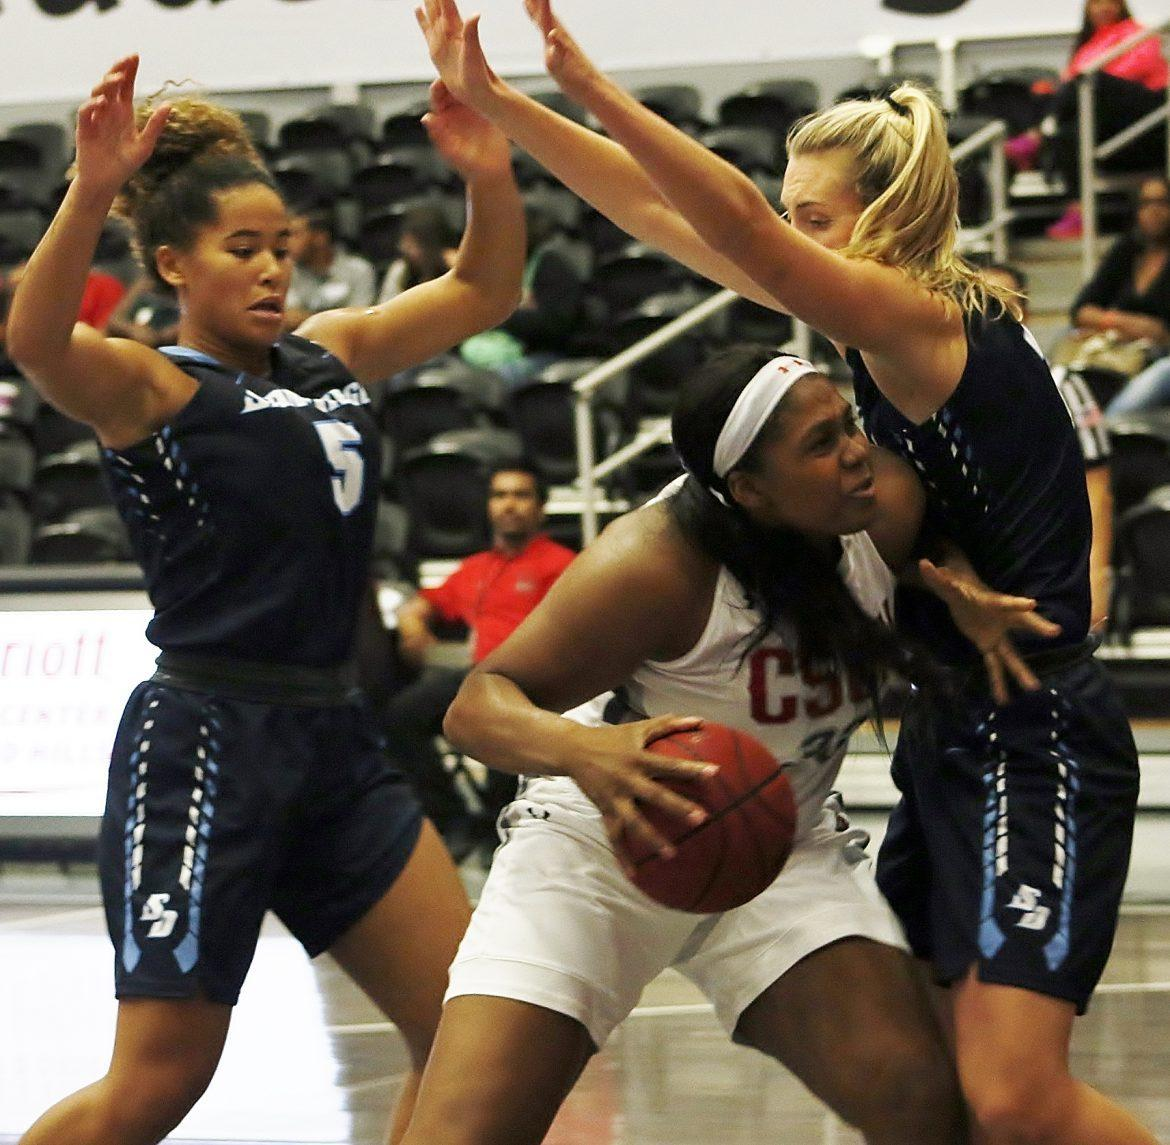 CSUN womans basketball player defending ball during game